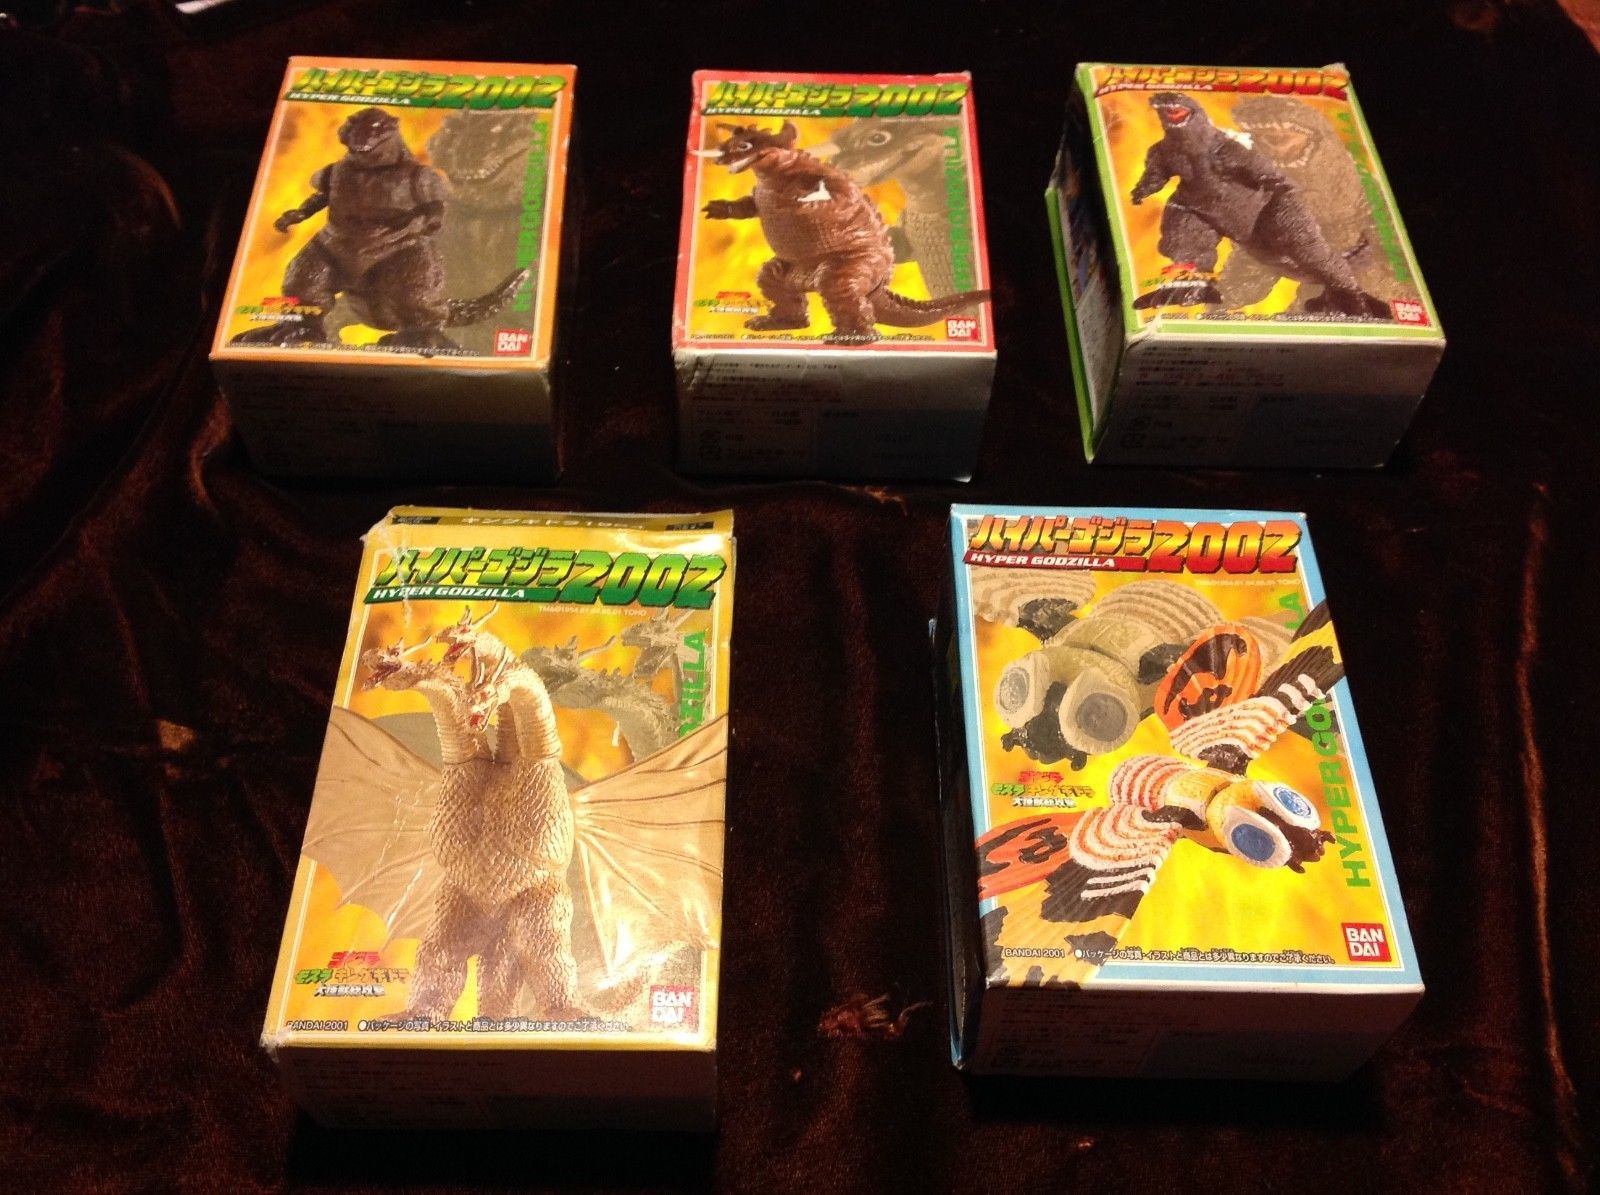 Bandai 2002 Hyper Godzilla complete Set Of 5 Pieces boxed